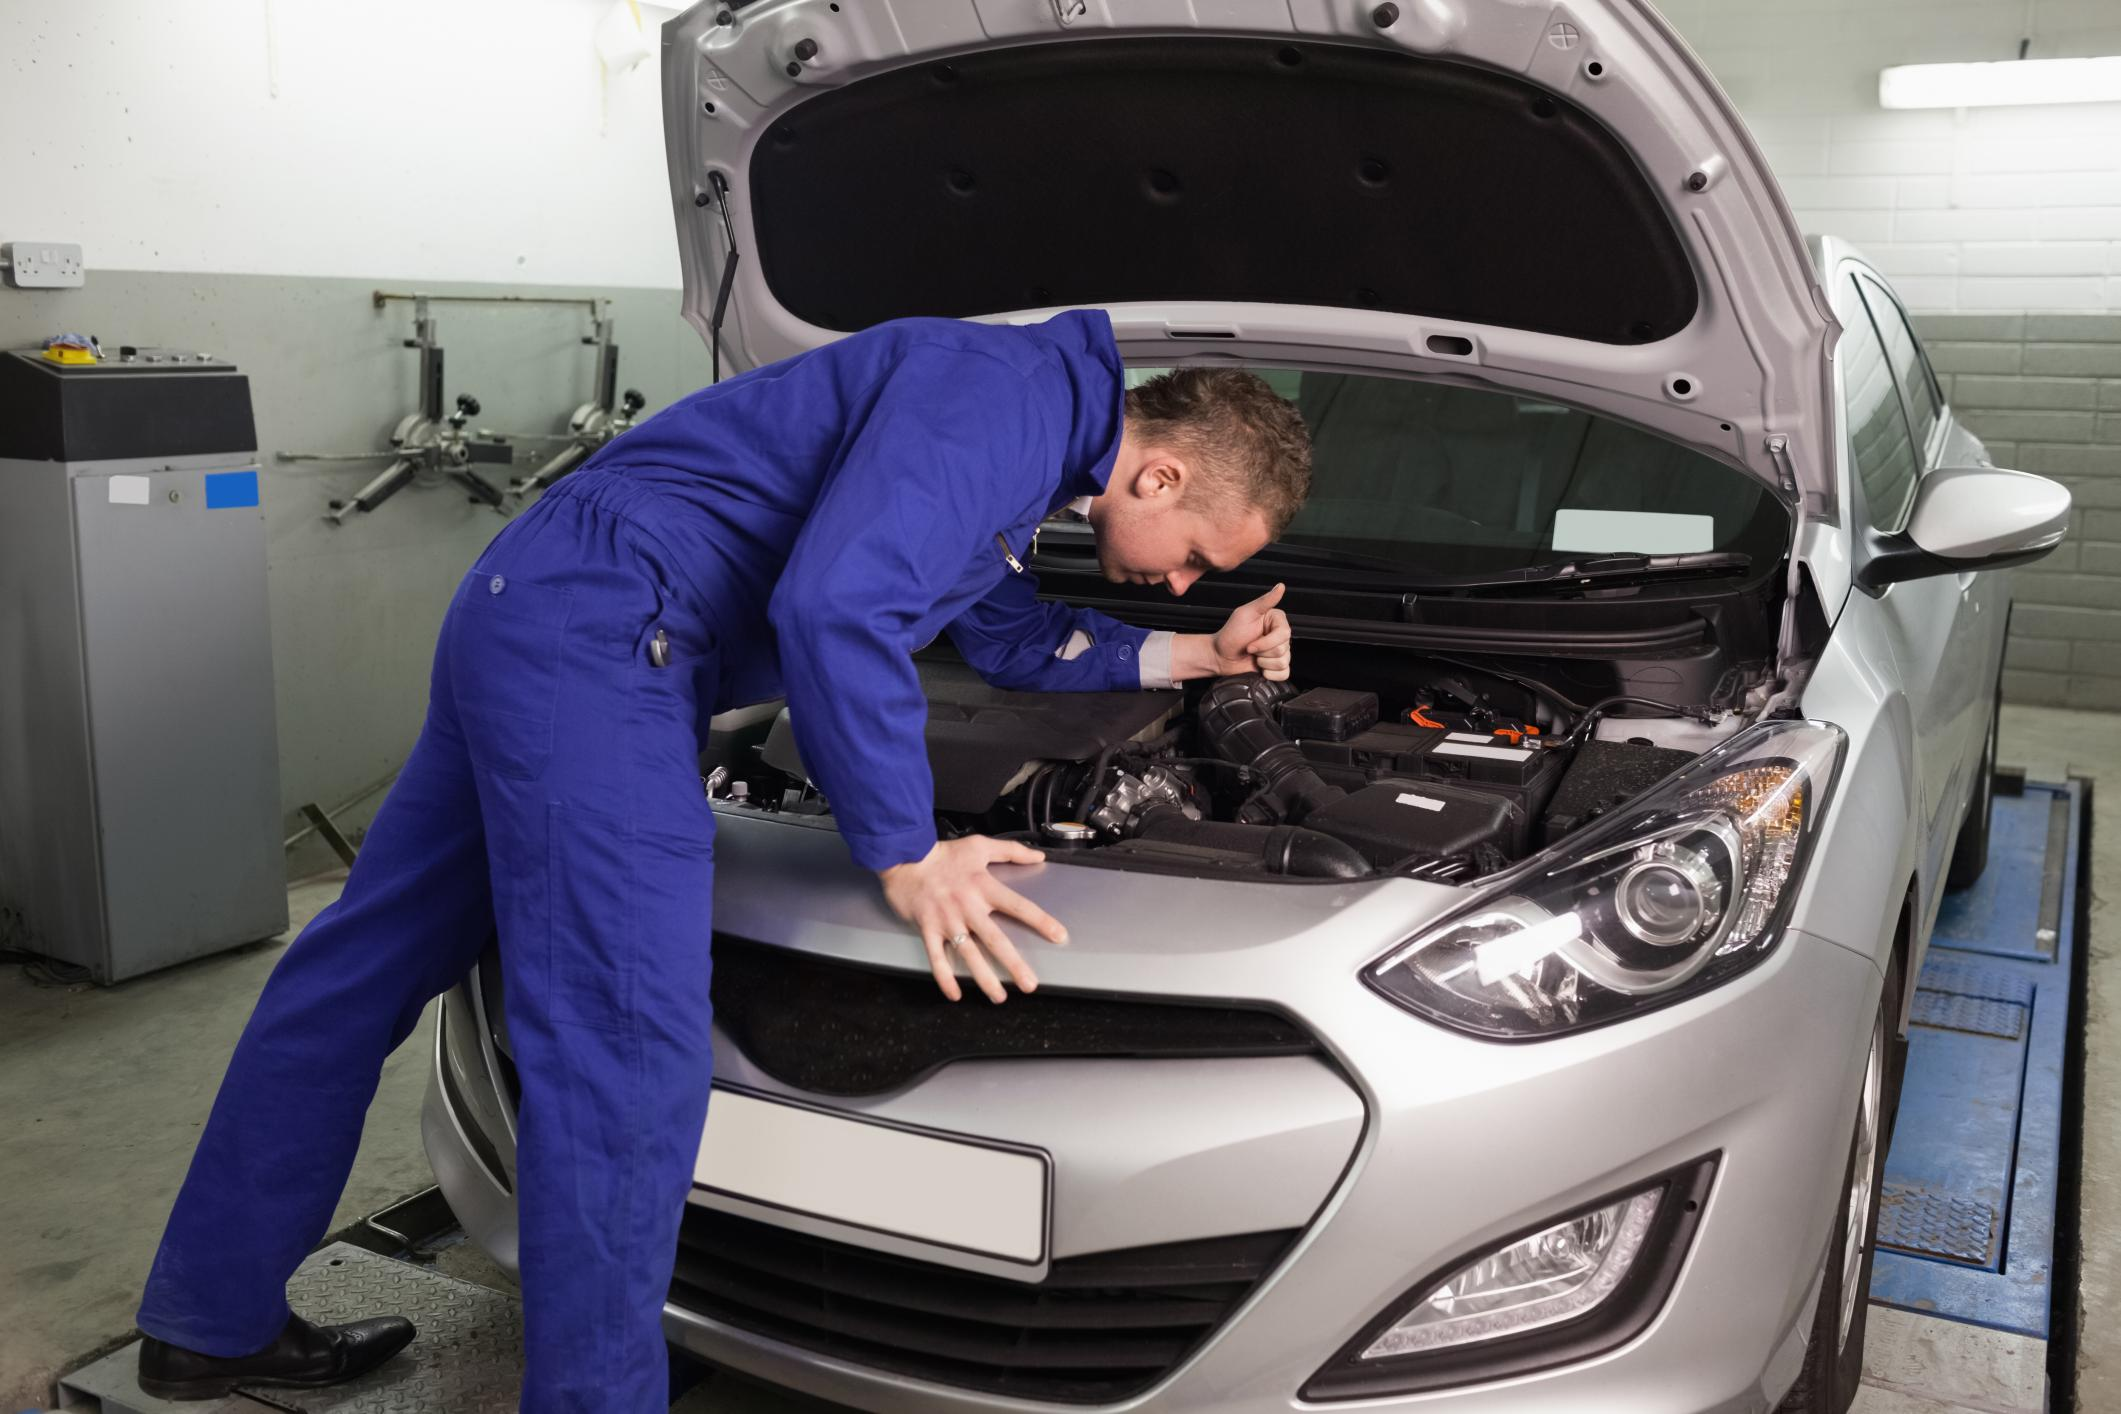 This is a picture of an on-site vehicle repair.